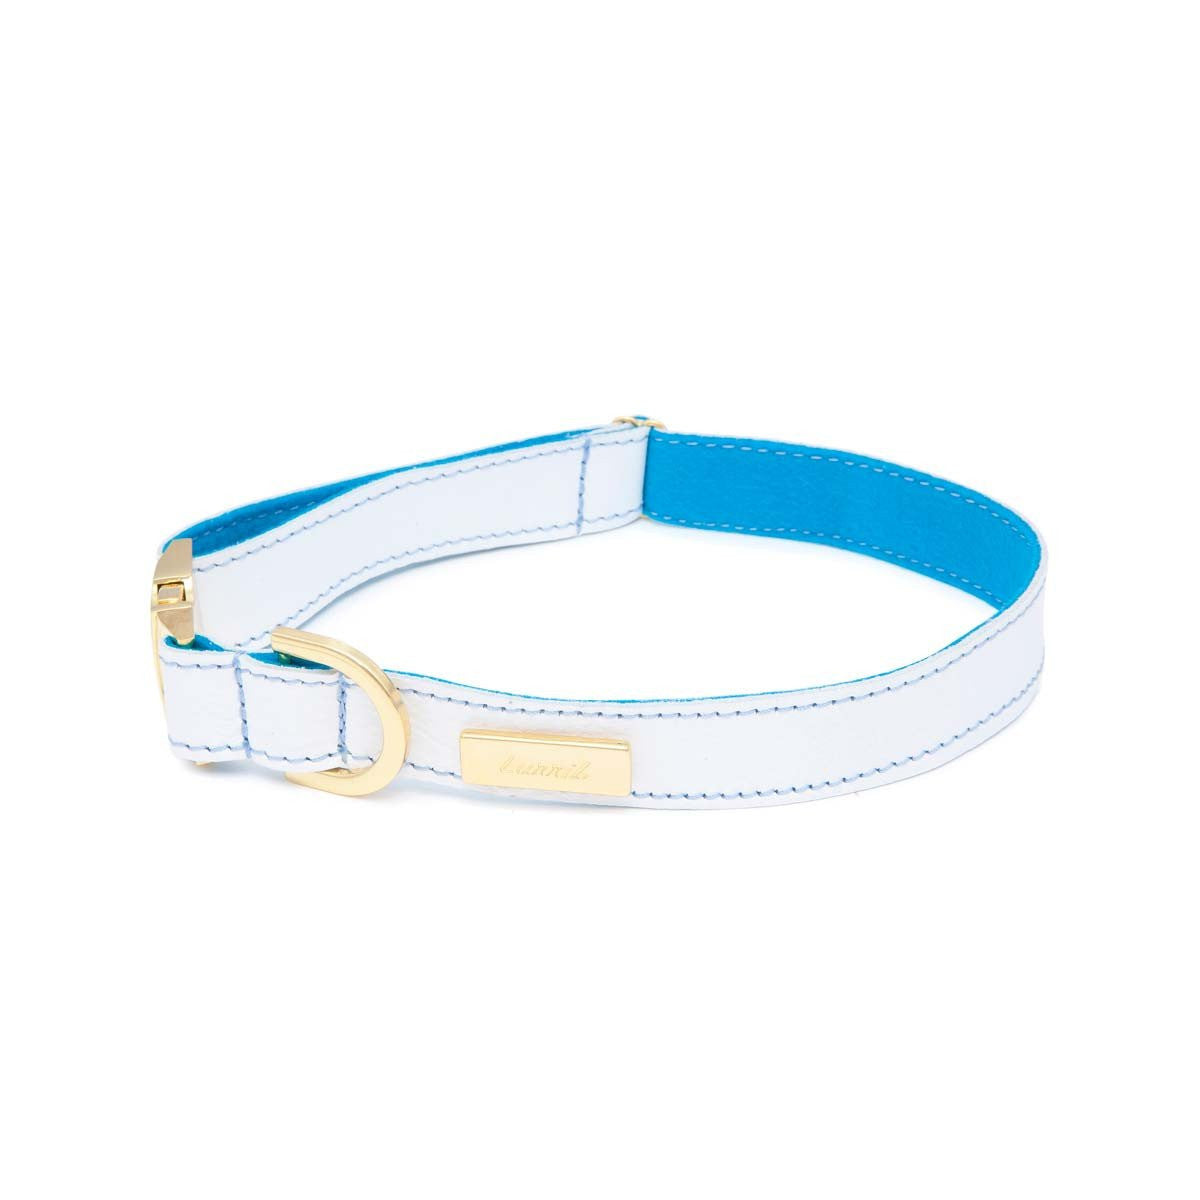 Dalmatian Dog Collar - Durable, Soft White Leather with Soft Wool Lining